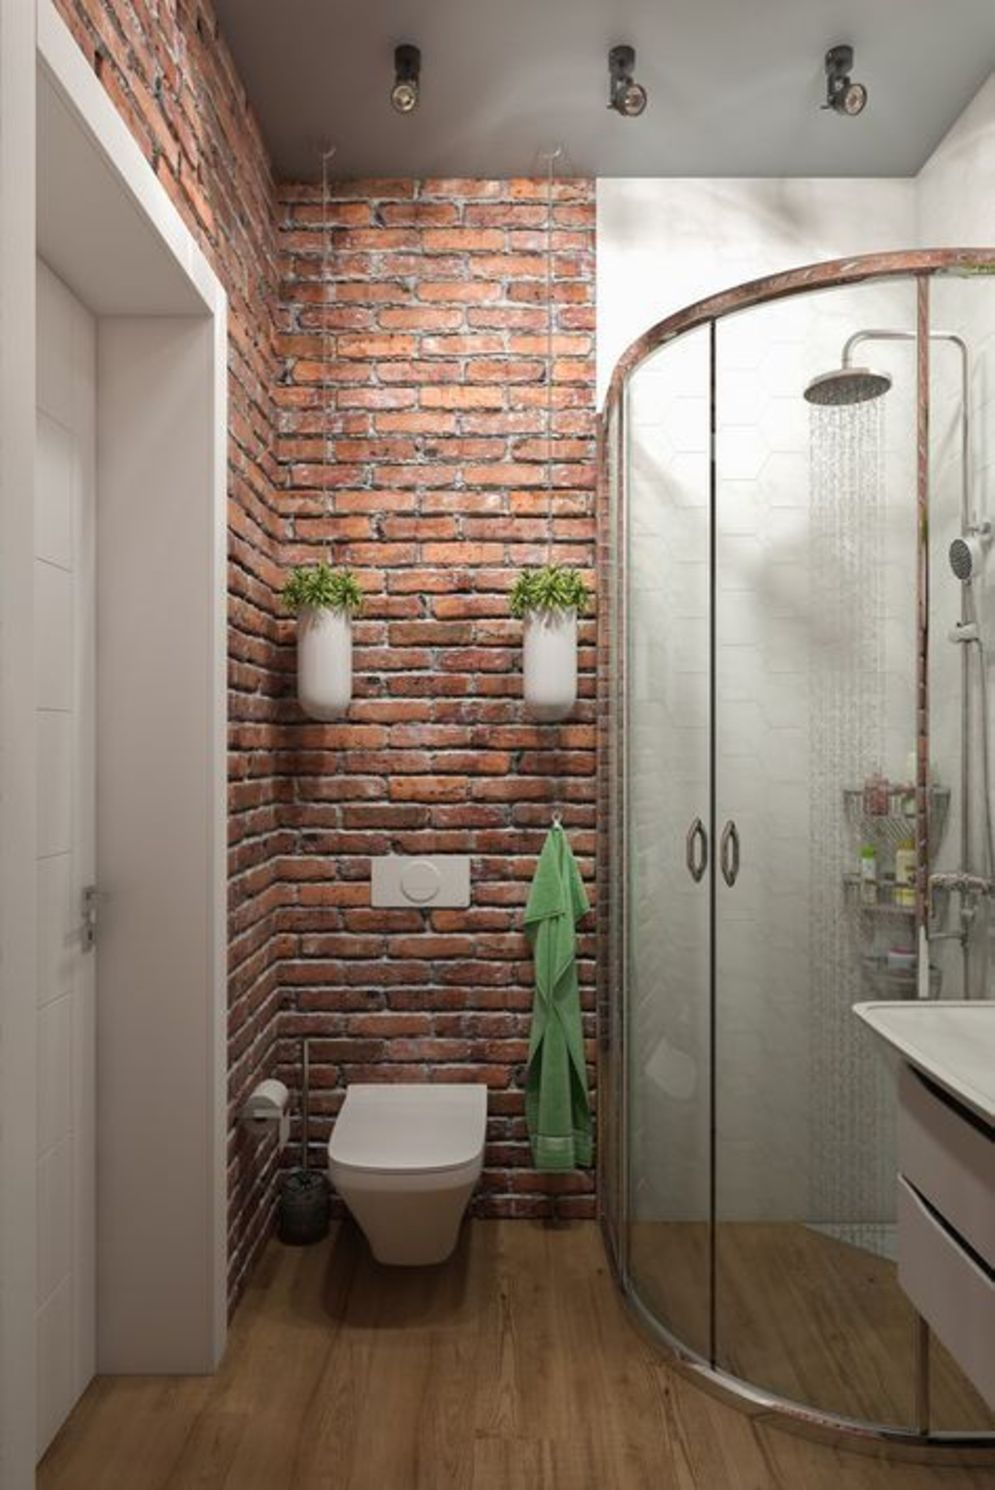 Modern Rustic Bathroom Styles Showing Amazing Viewpoint Of Brick Wall Decoration Image 29 Shairoom Com Brick Tiles Bathroom Brick Bathroom Small Bathroom Makeover